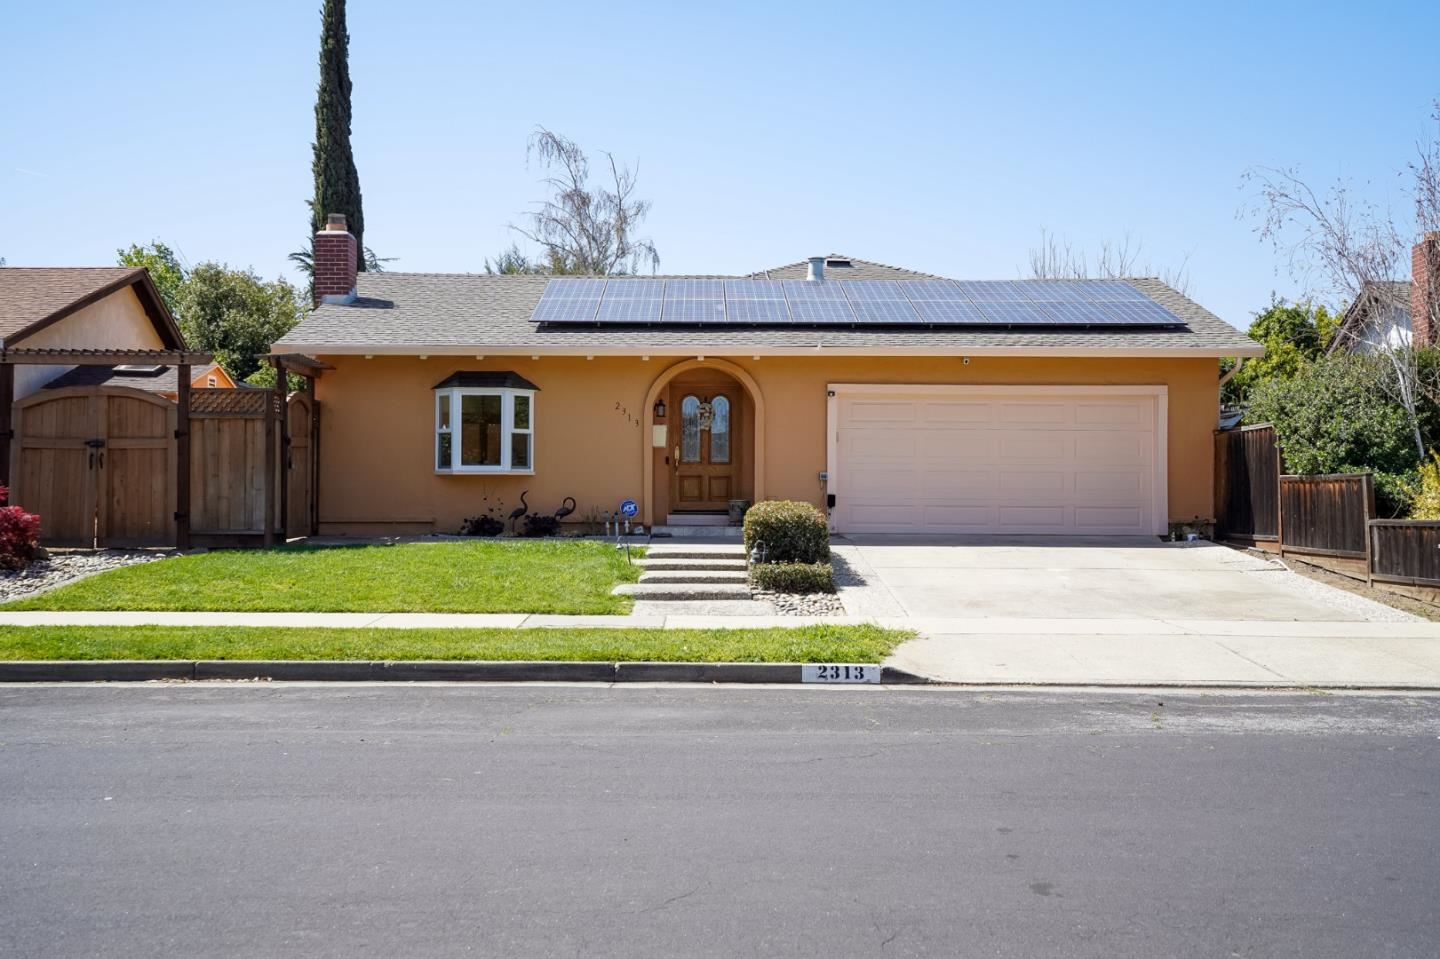 Photo for 2313 Valerie Court, CAMPBELL, CA 95008 (MLS # ML81840143)